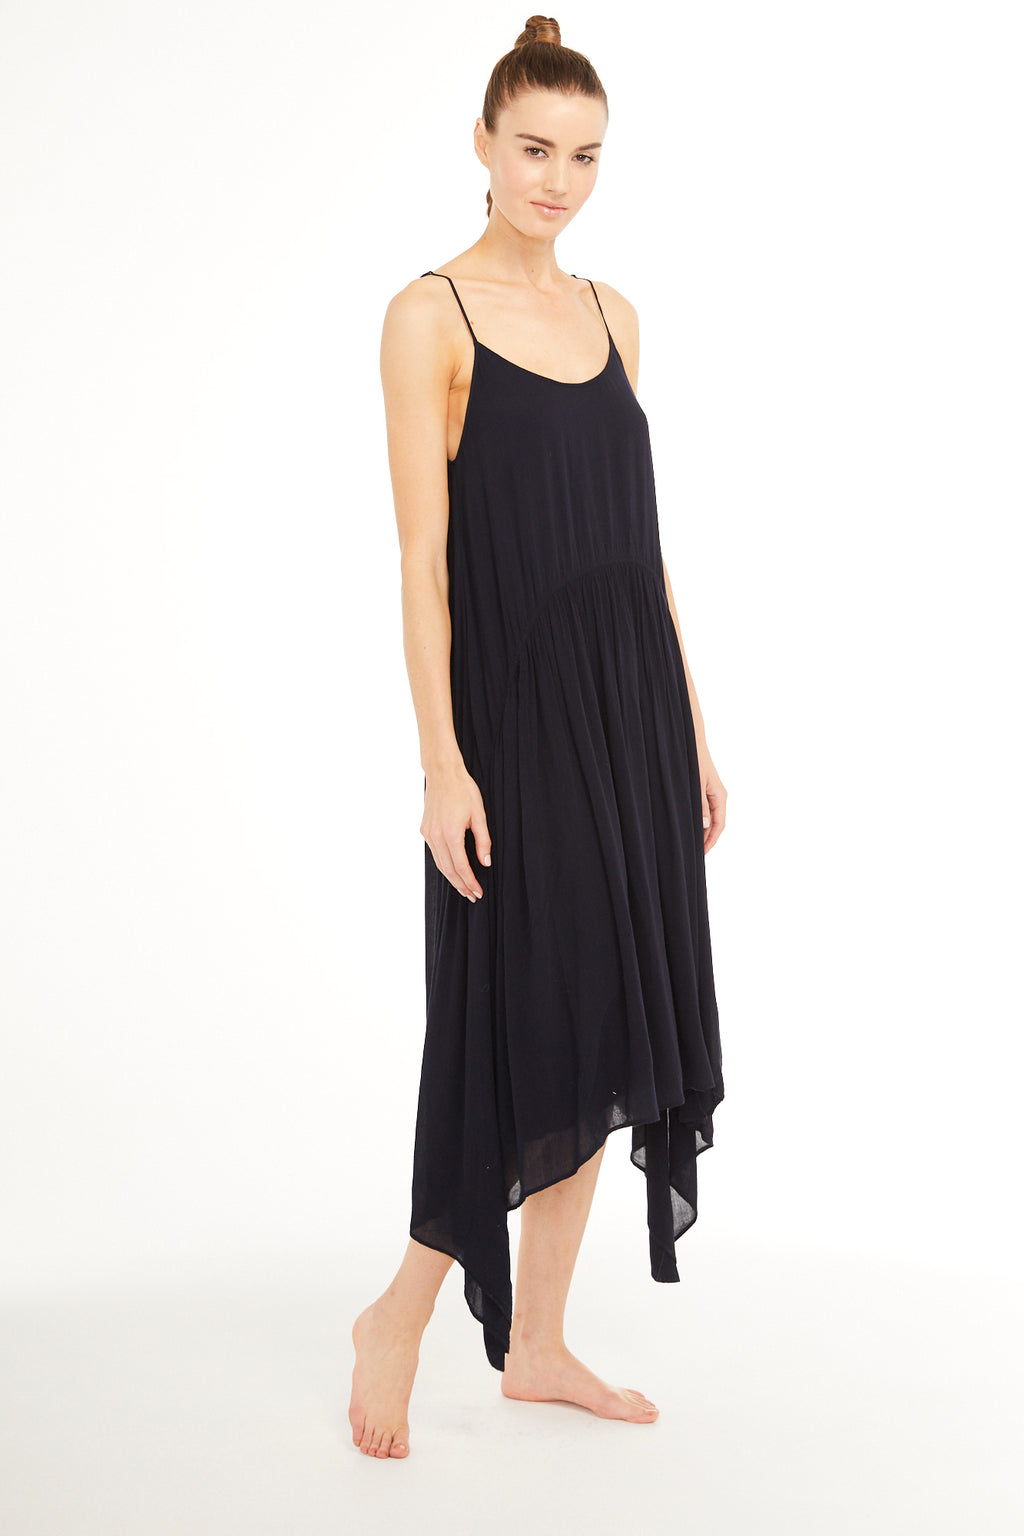 SUNDAYS NYC, DRESS, SUNDAYS NYC| Posey Maxi Tank Dress - Edgar Martha's Vineyard